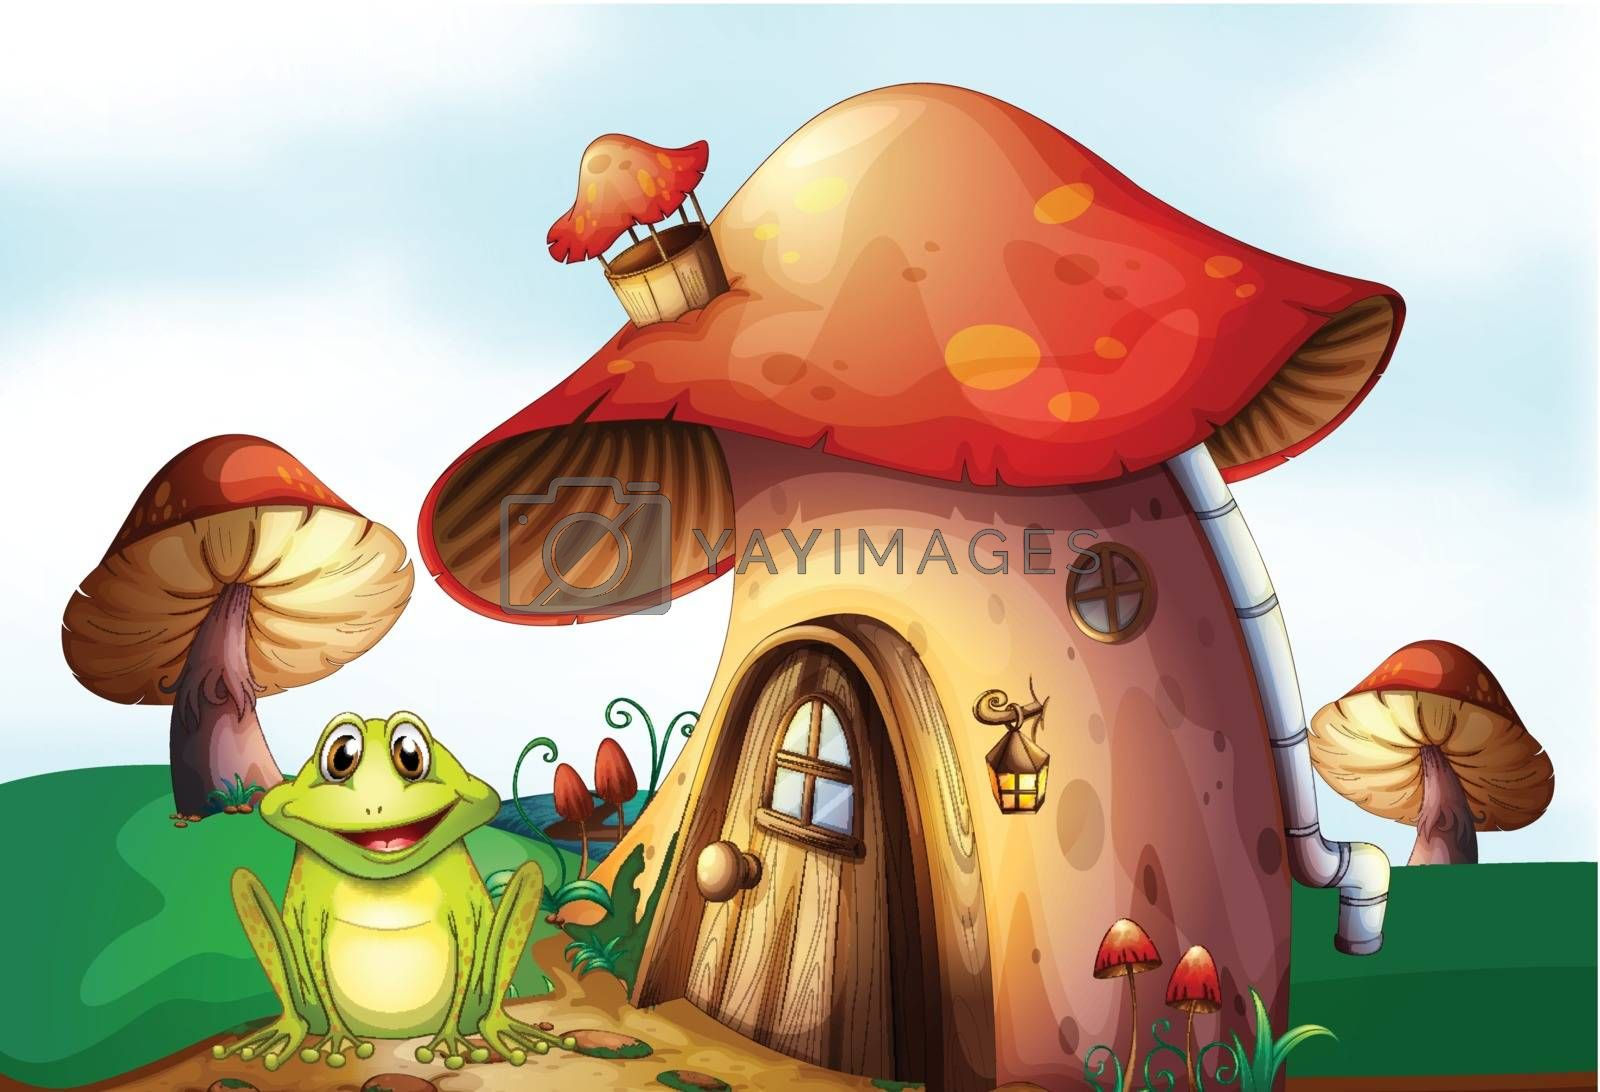 Illustration of a frog beside a mushroom house